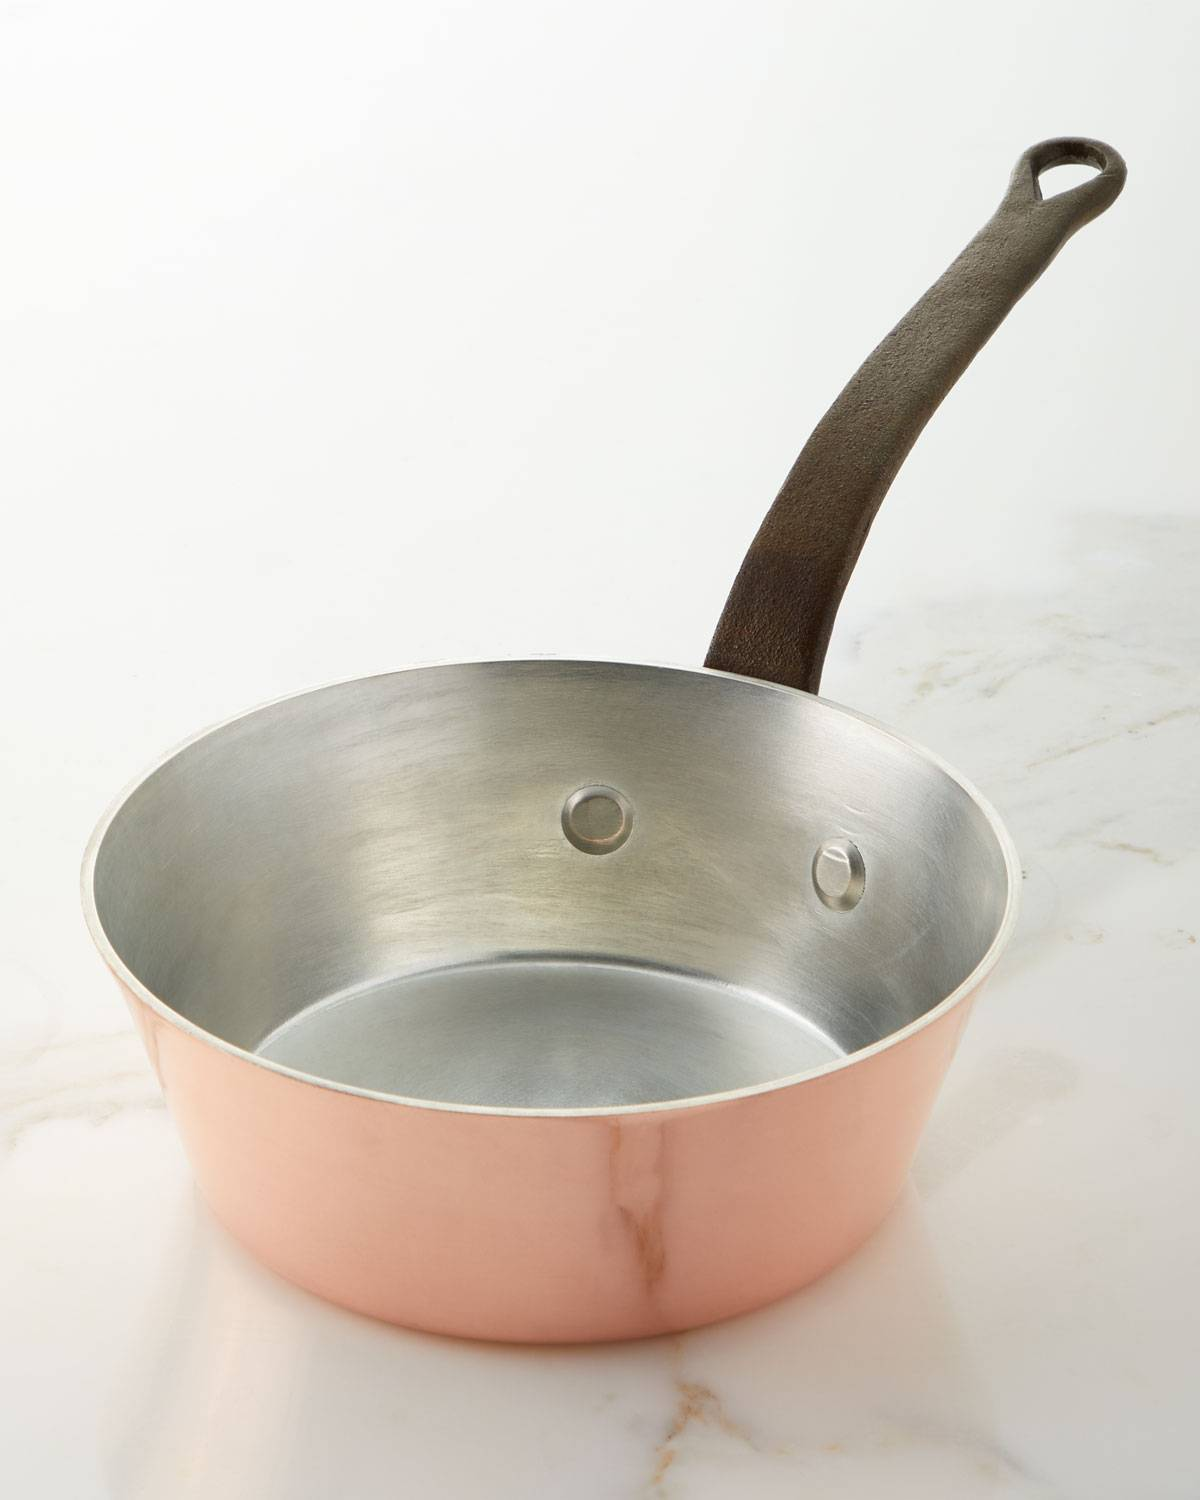 Duparquet Copper Cookware Solid Copper Tin-Lined Splayed Sauce Pan